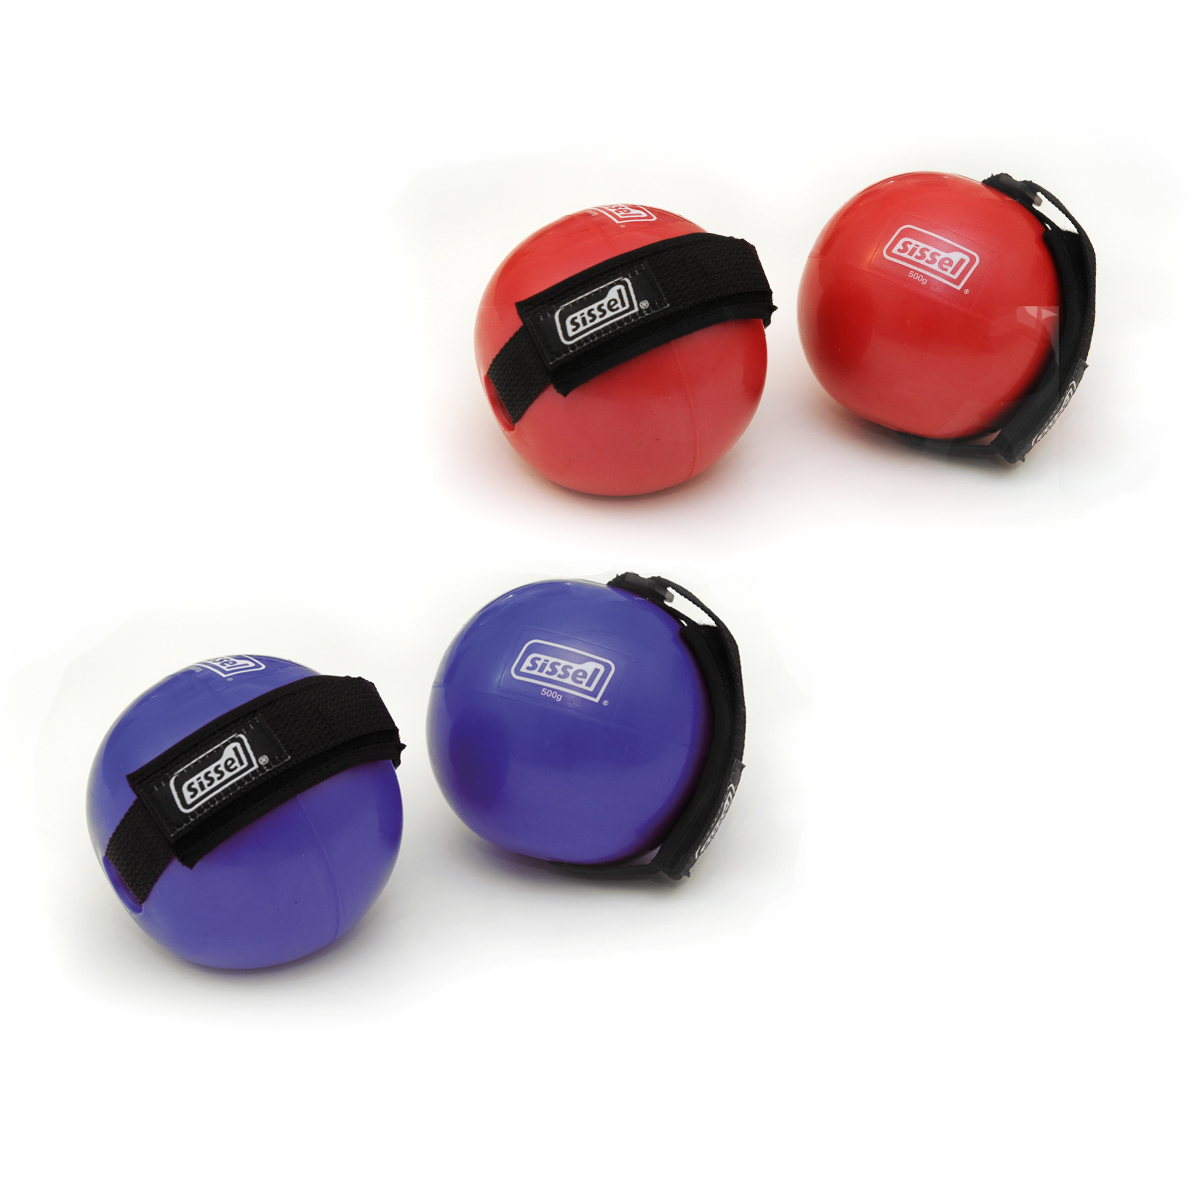 Le palle con robuste cinghie Fitness Toning Ball SISSEL